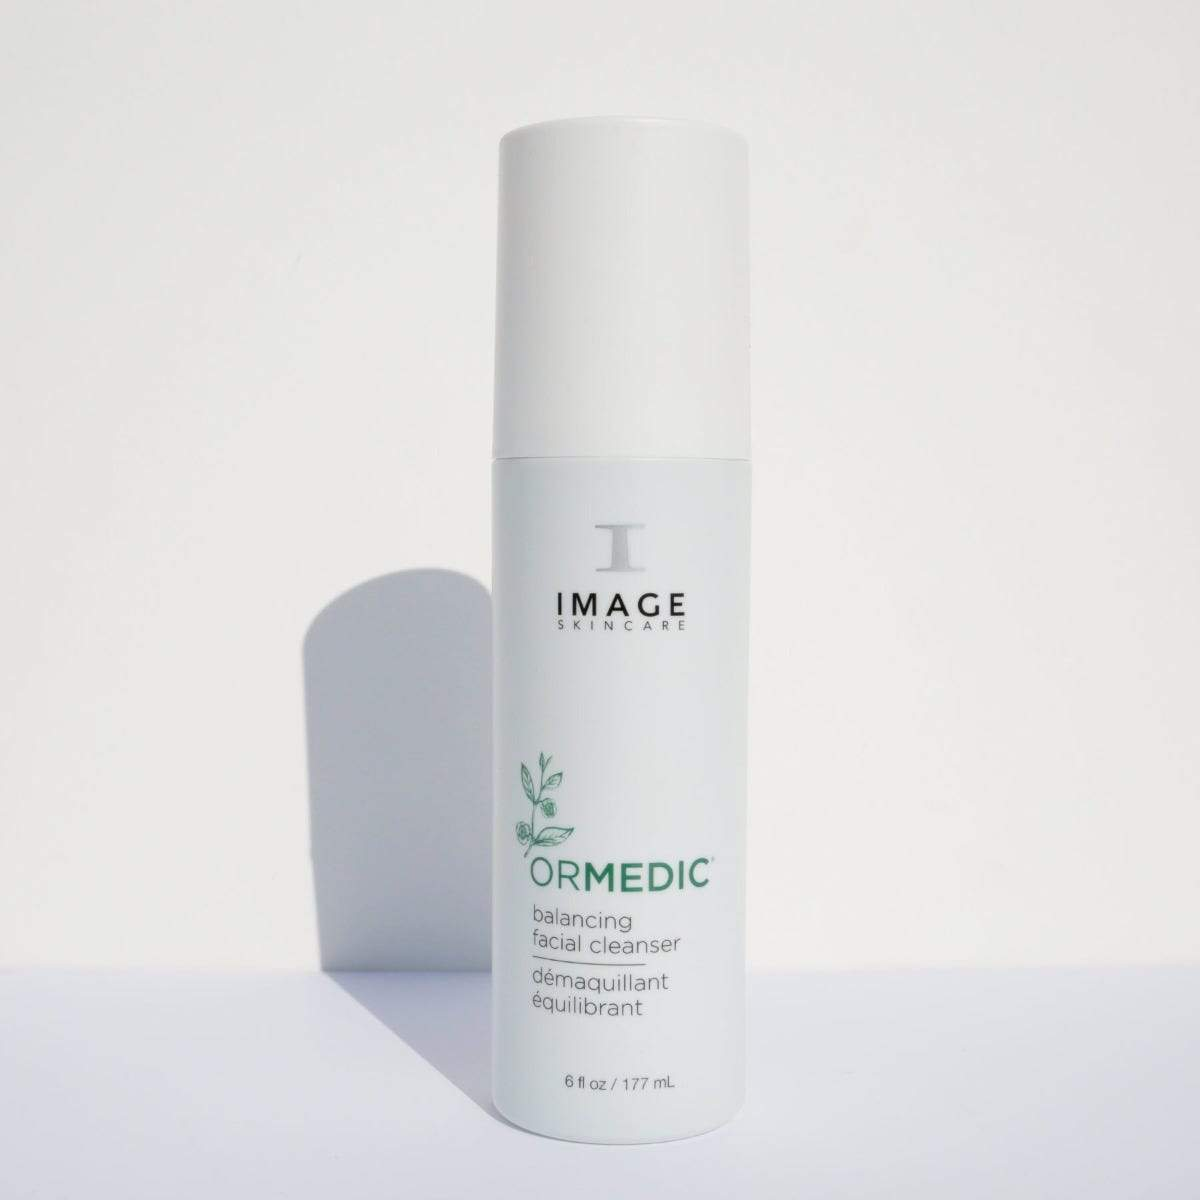 Ormedic Balancing Cleanser